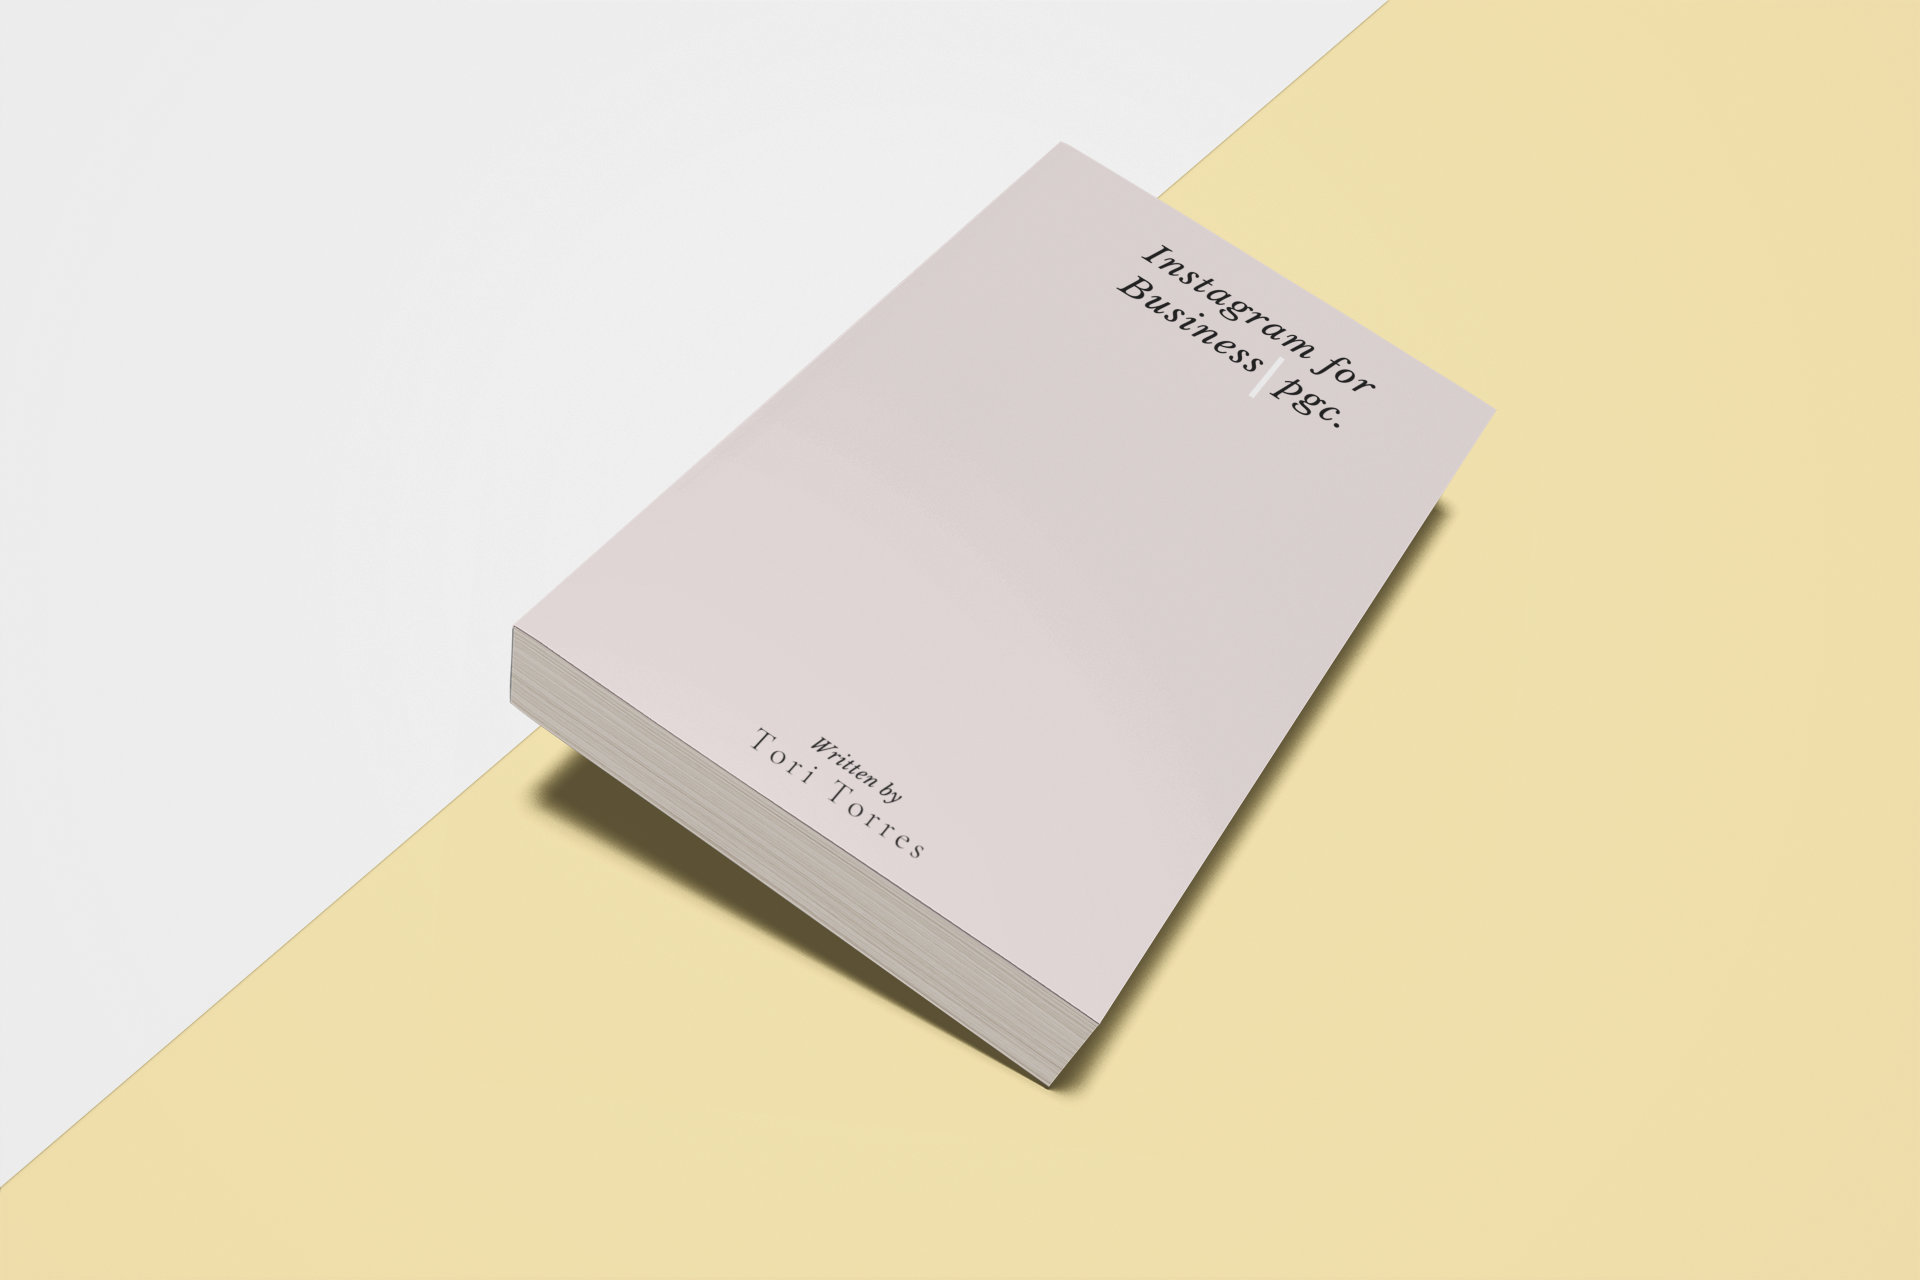 mockup-of-a-book-tilted-over-a-bicolor-surface-24506.png